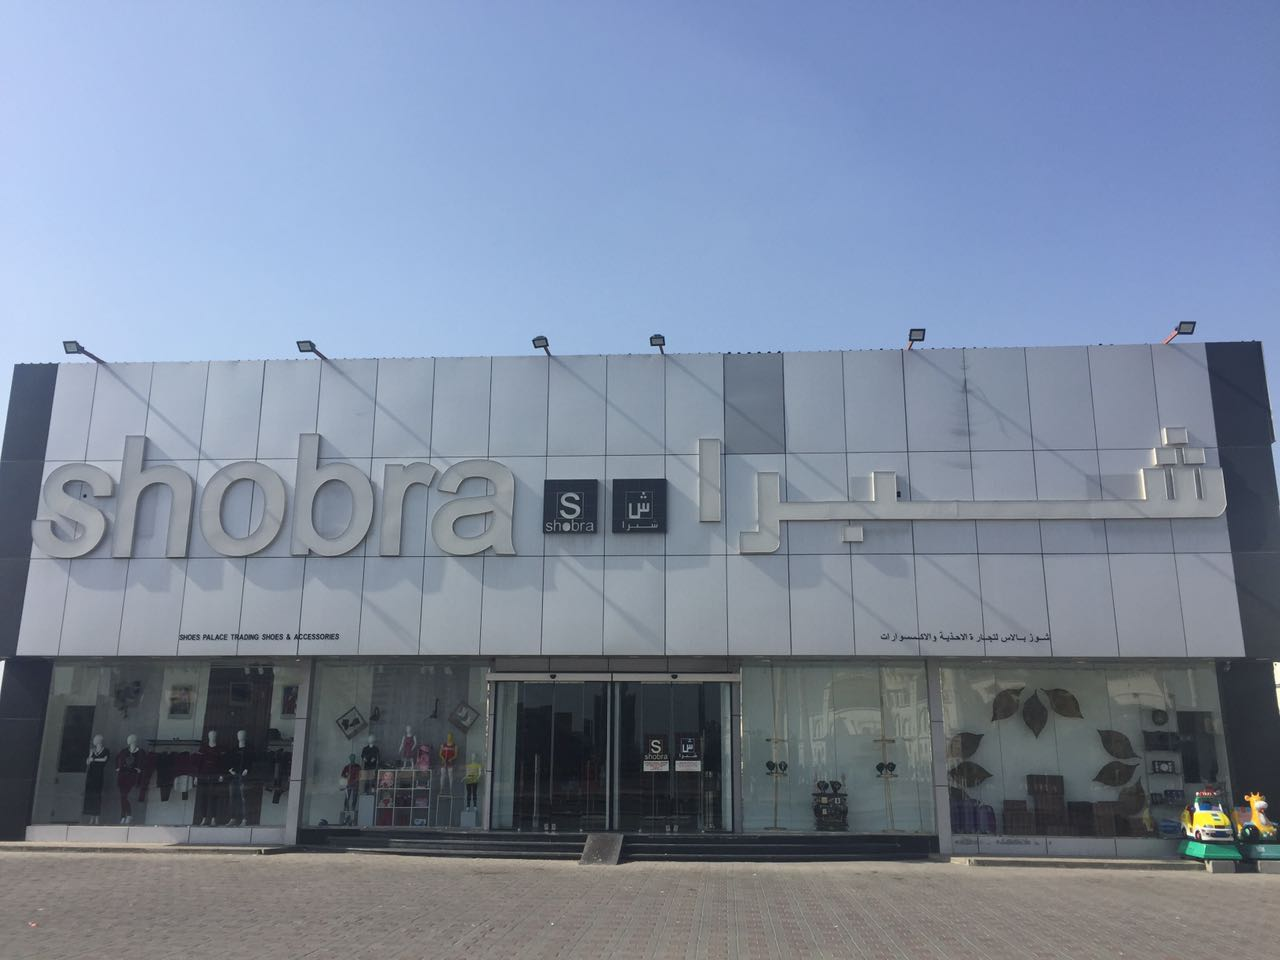 Shobra - Shoes Palace Trading Shoes